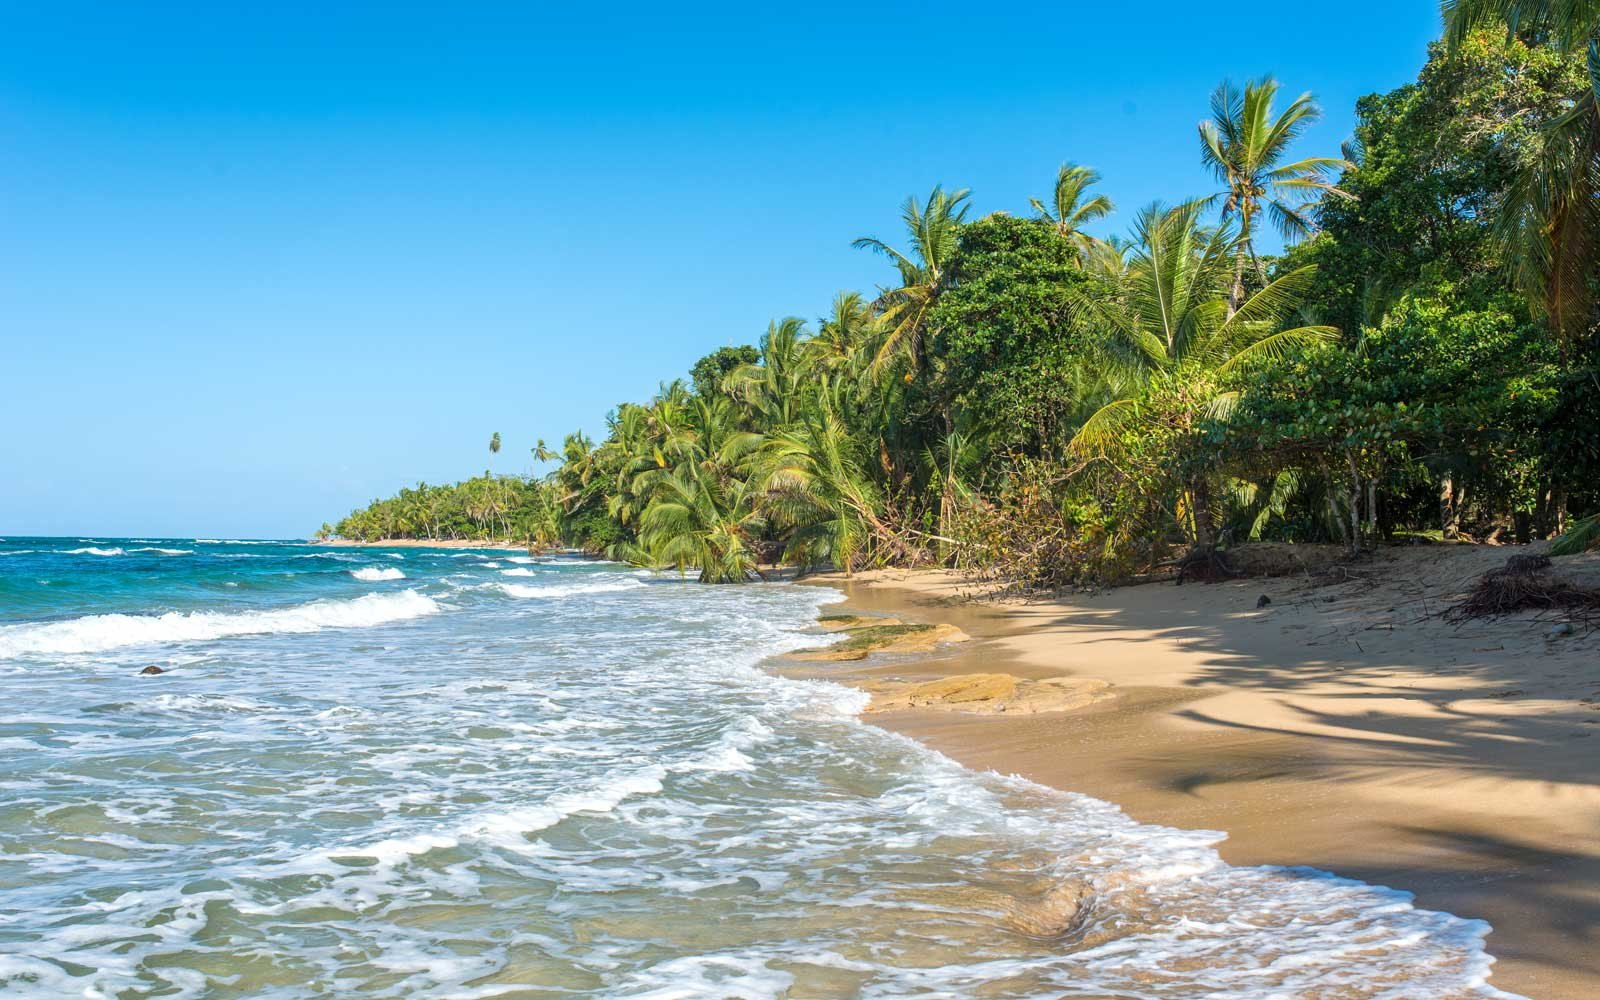 Punta Uva beach in Costa Rica, close to Puerto Viejo, wild and beautiful caribbean coast